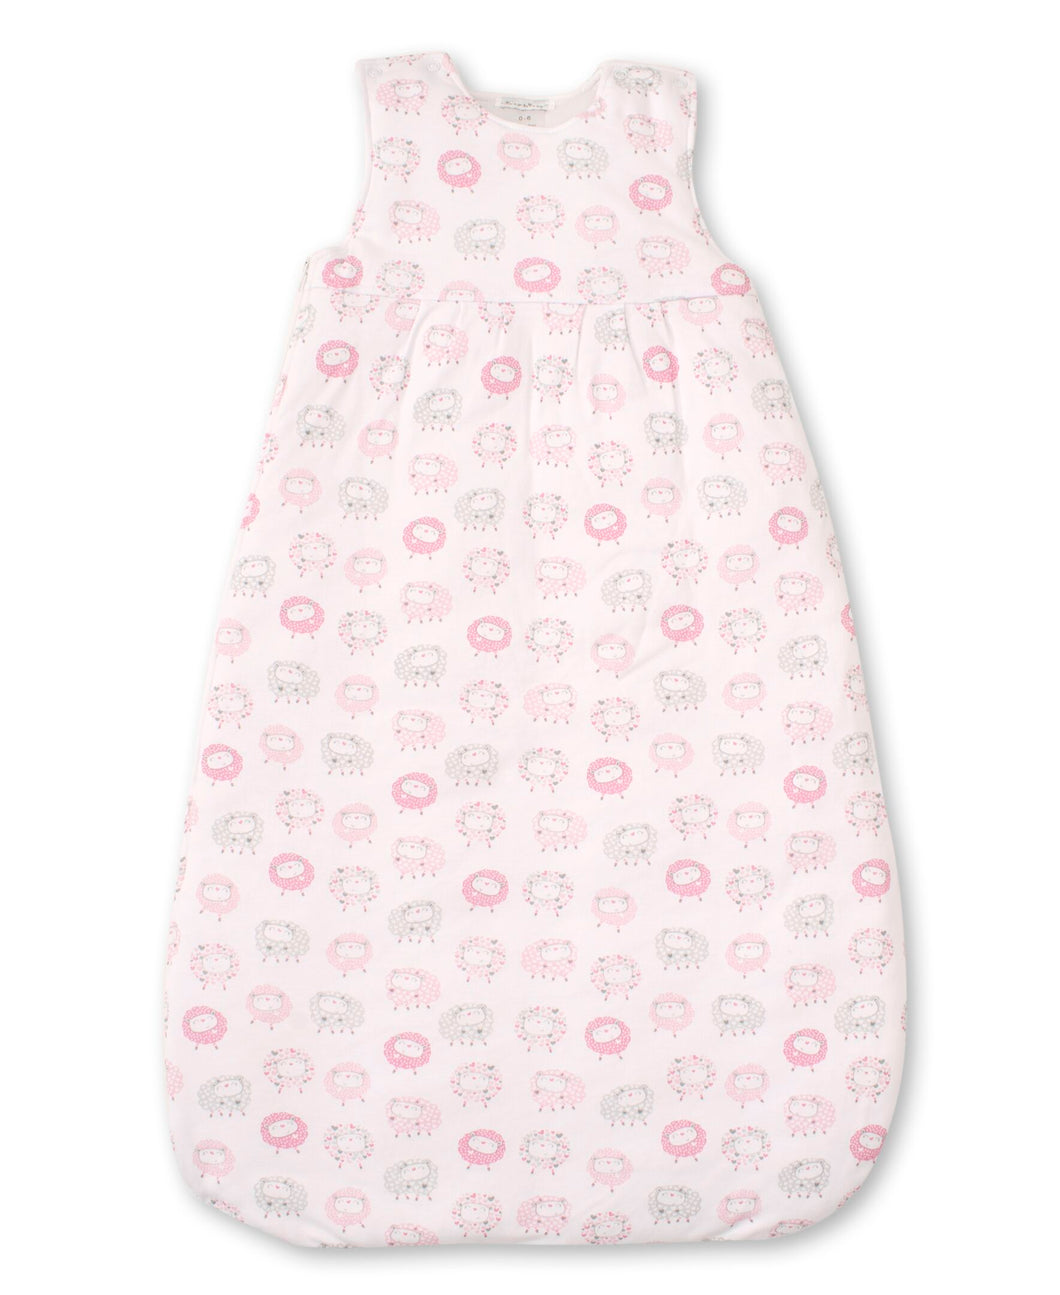 Shabby Sheep Snuggle Bag - Pink Print